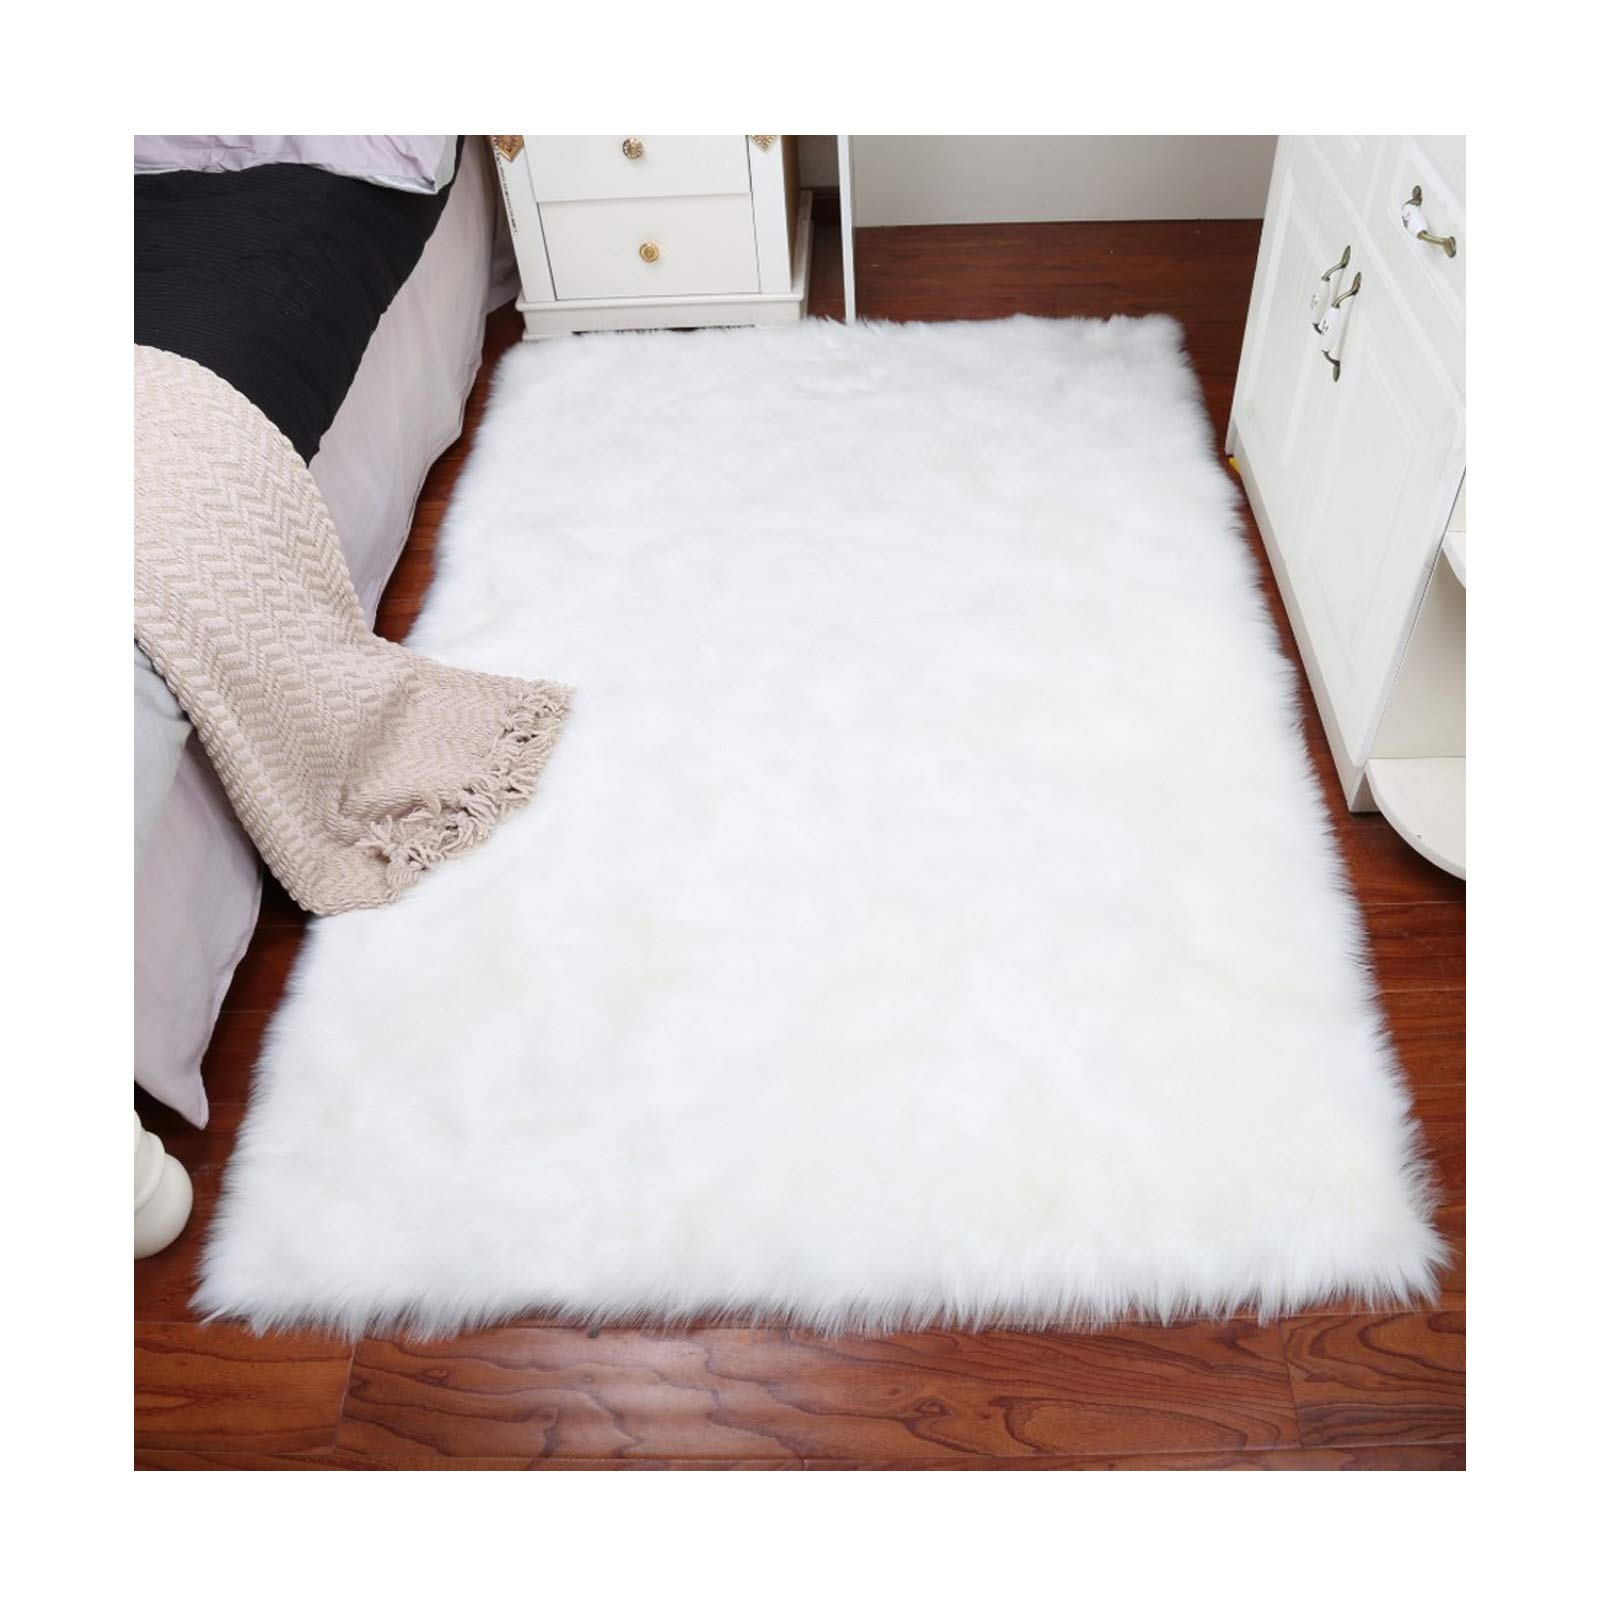 Elhouse Home Decor Rectangle Rugs Faux Fur Sheepskin Area Rug Shaggy Carpet Fluffy Rug for Baby Bedroom,2ftx5ft,White